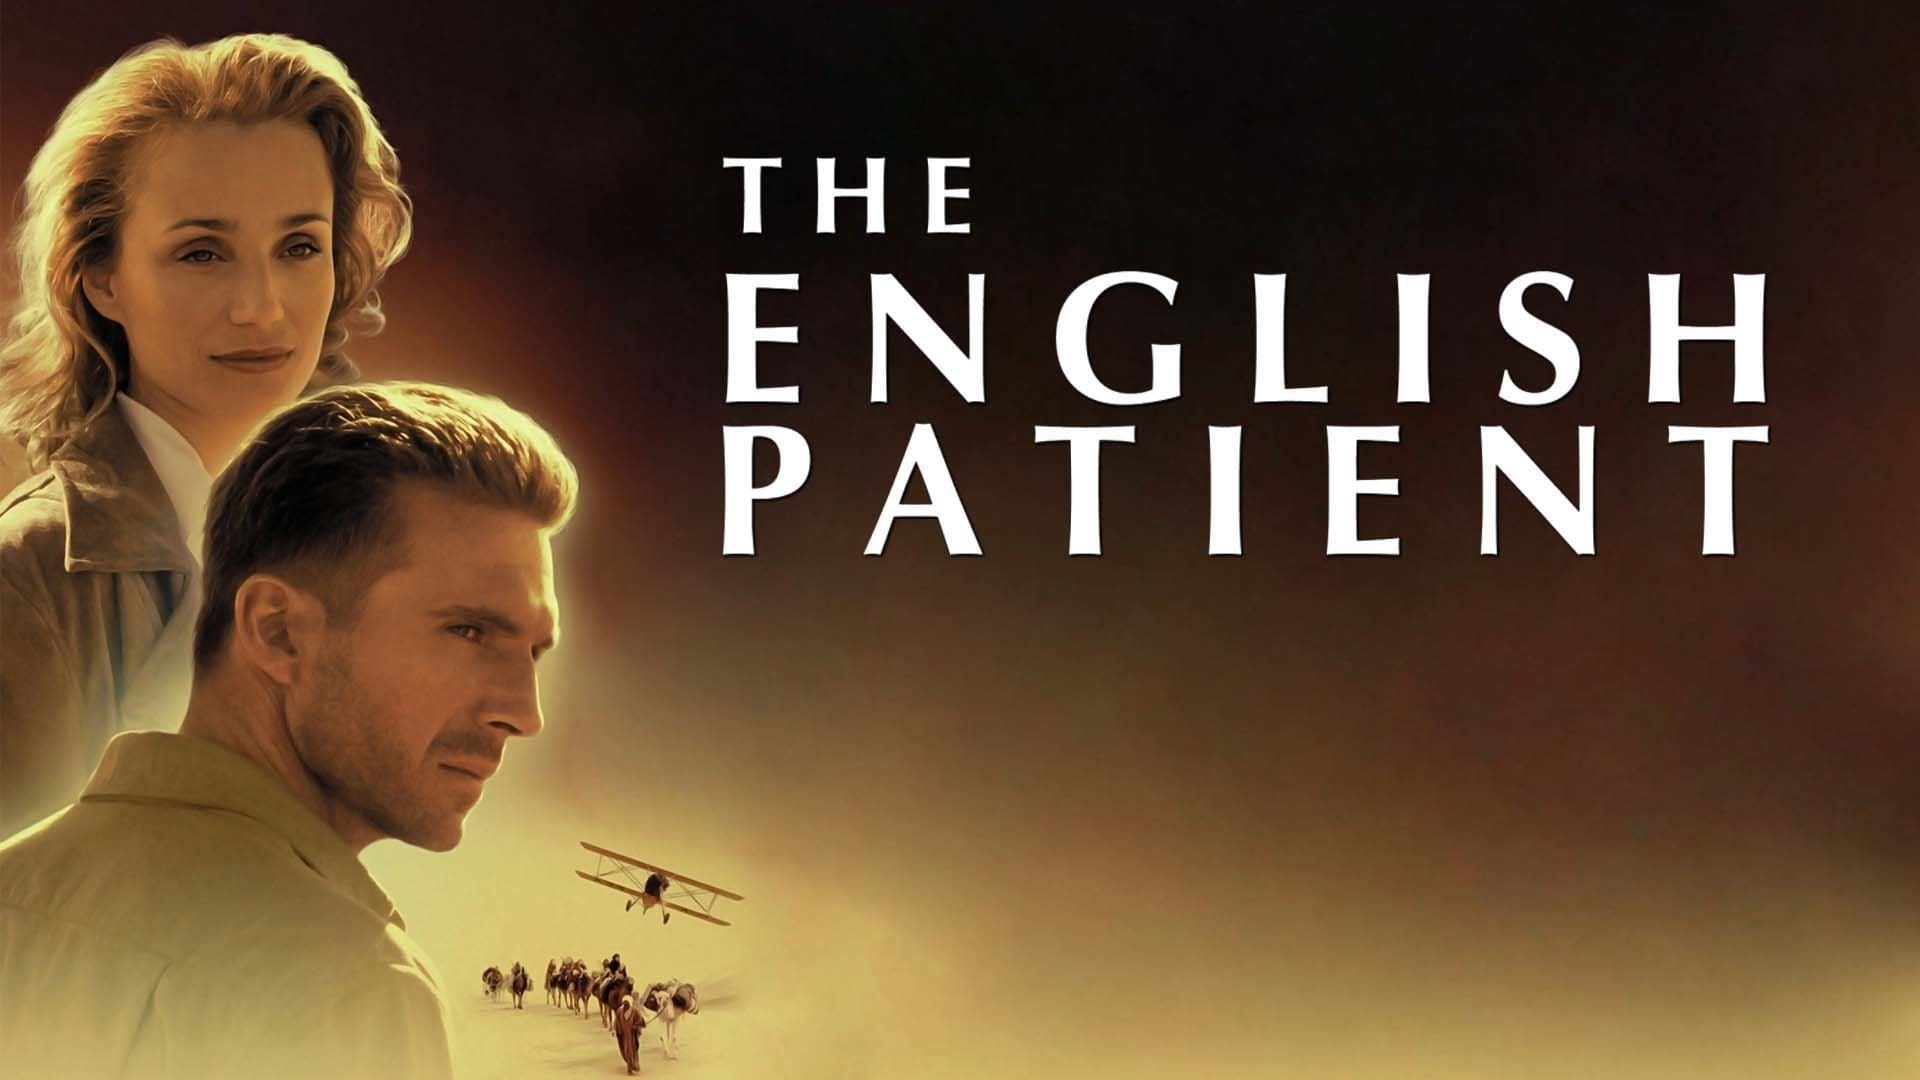 english patient Includes reviews, audio clips, track listings, pictures, and other notes about the english patient soundtrack by gabriel yared.